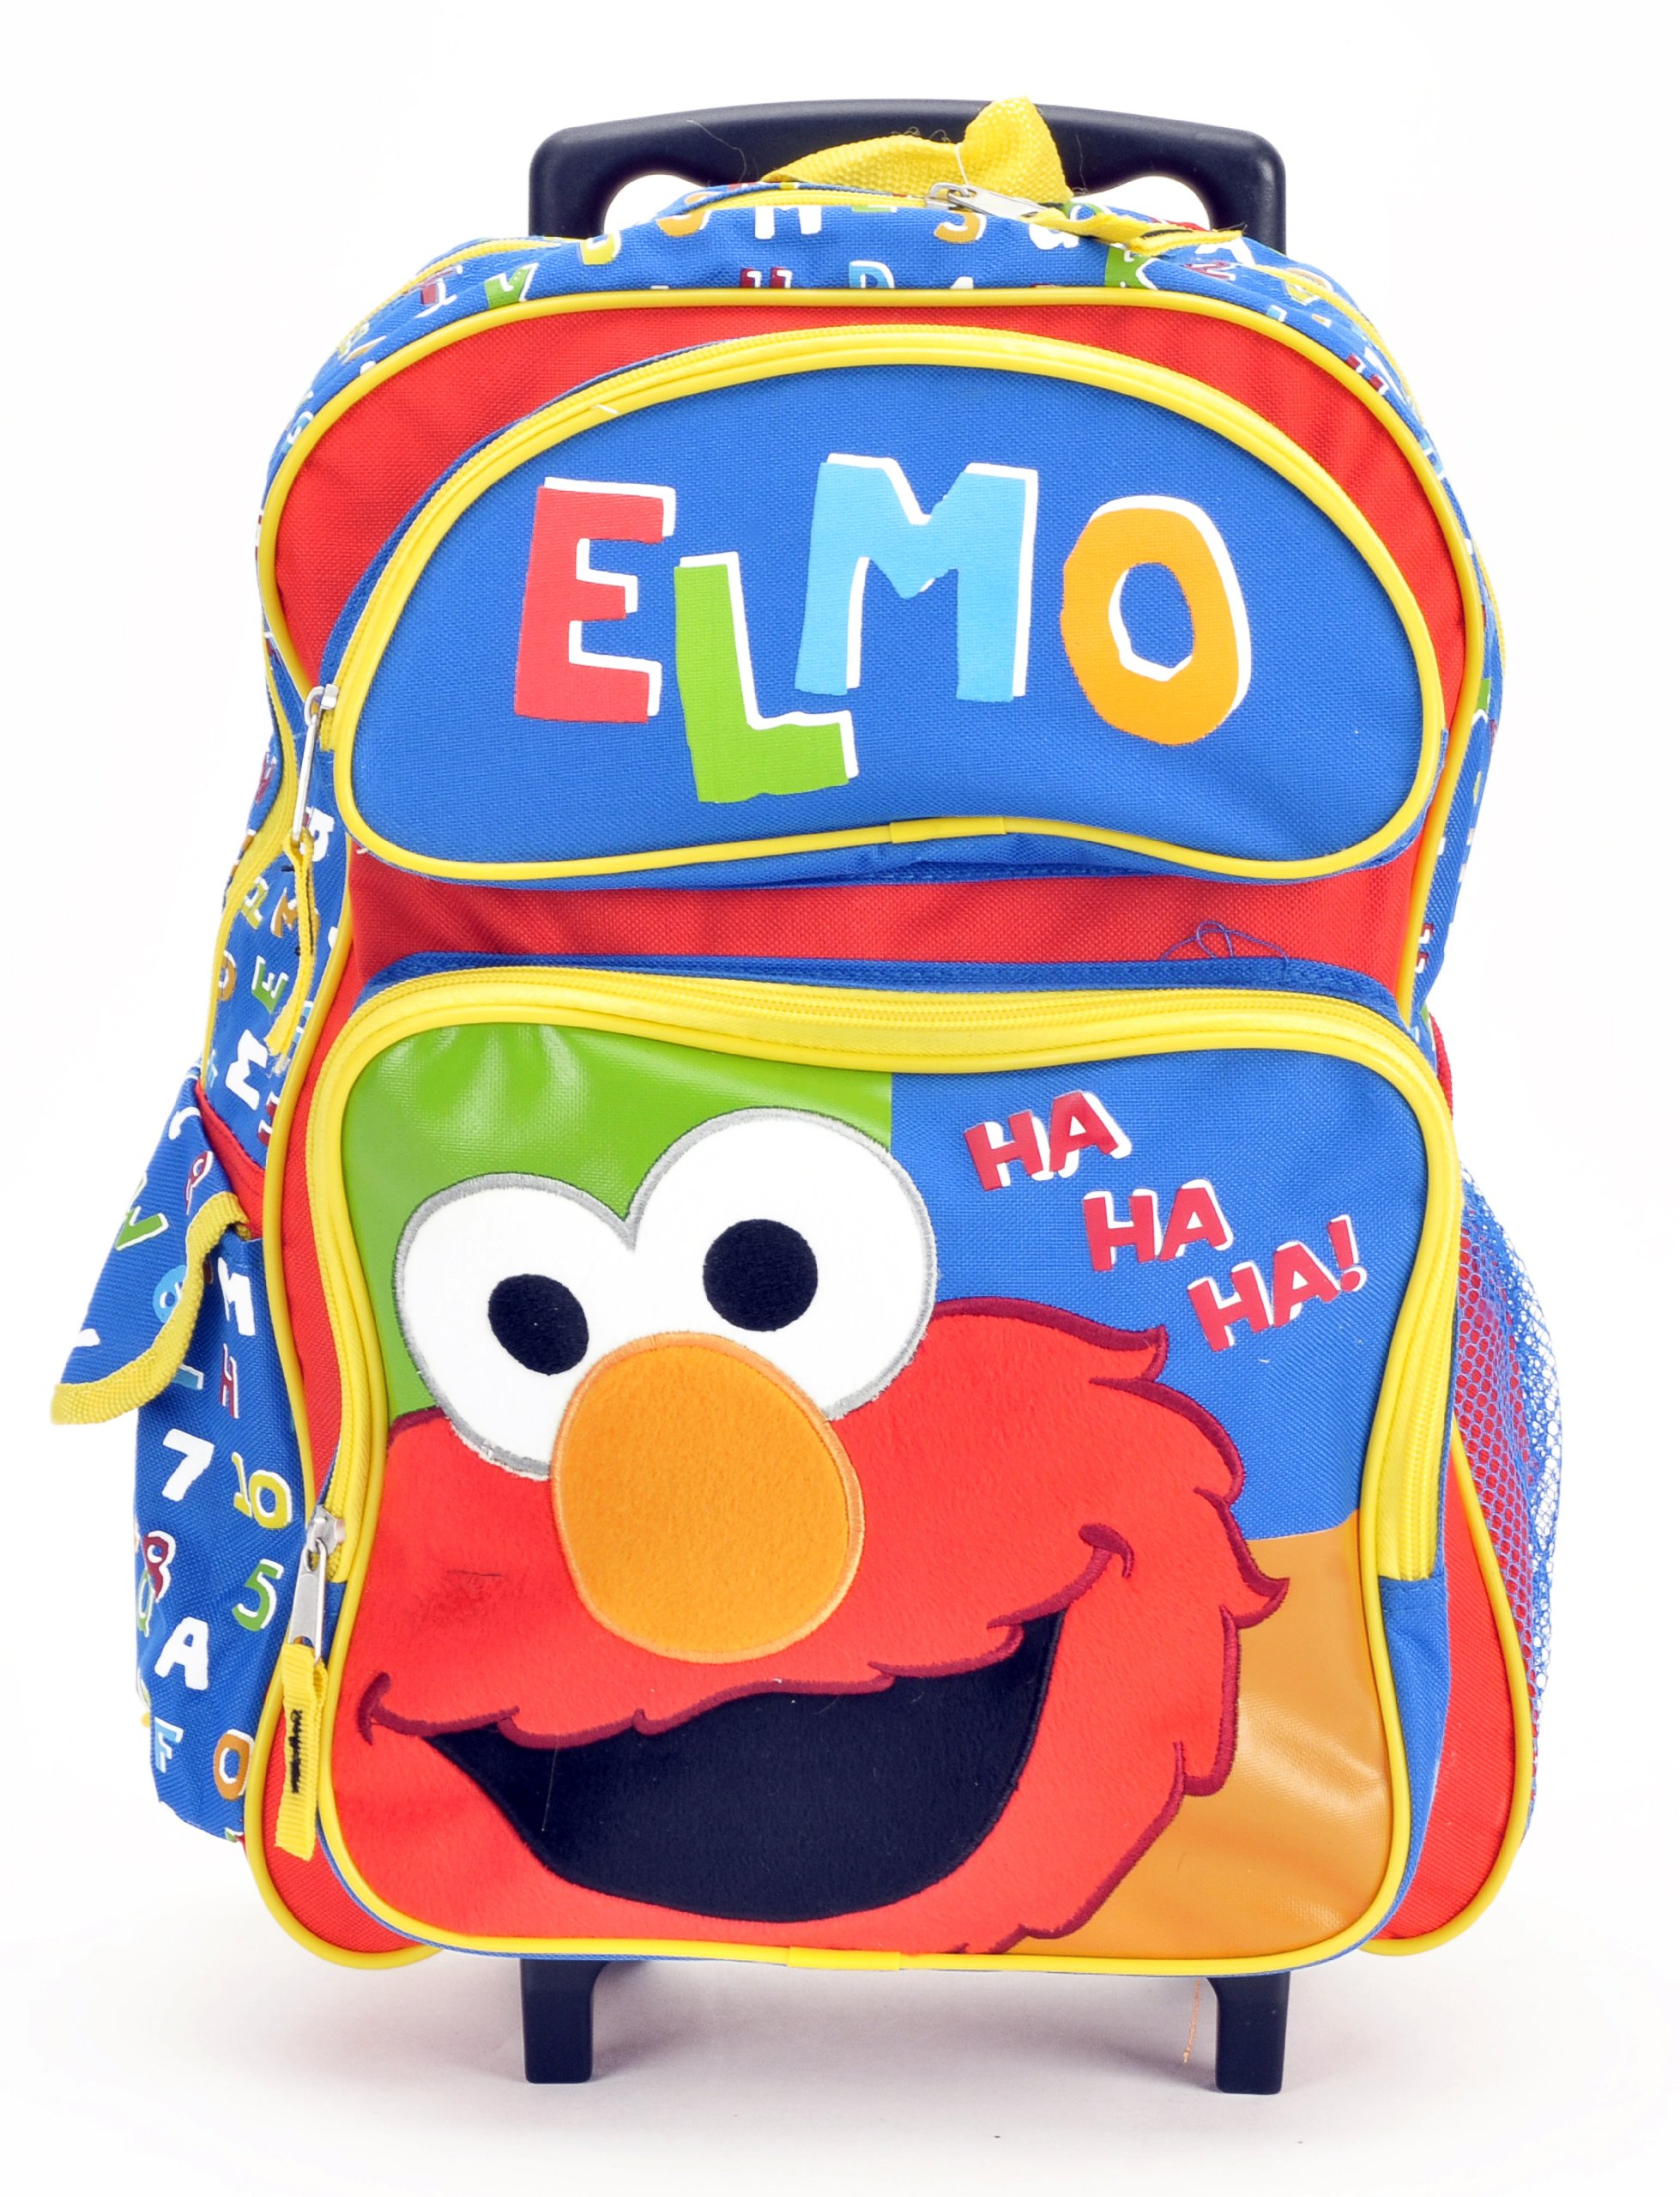 Elmo Suitcase Only!!!! by Sesame Street